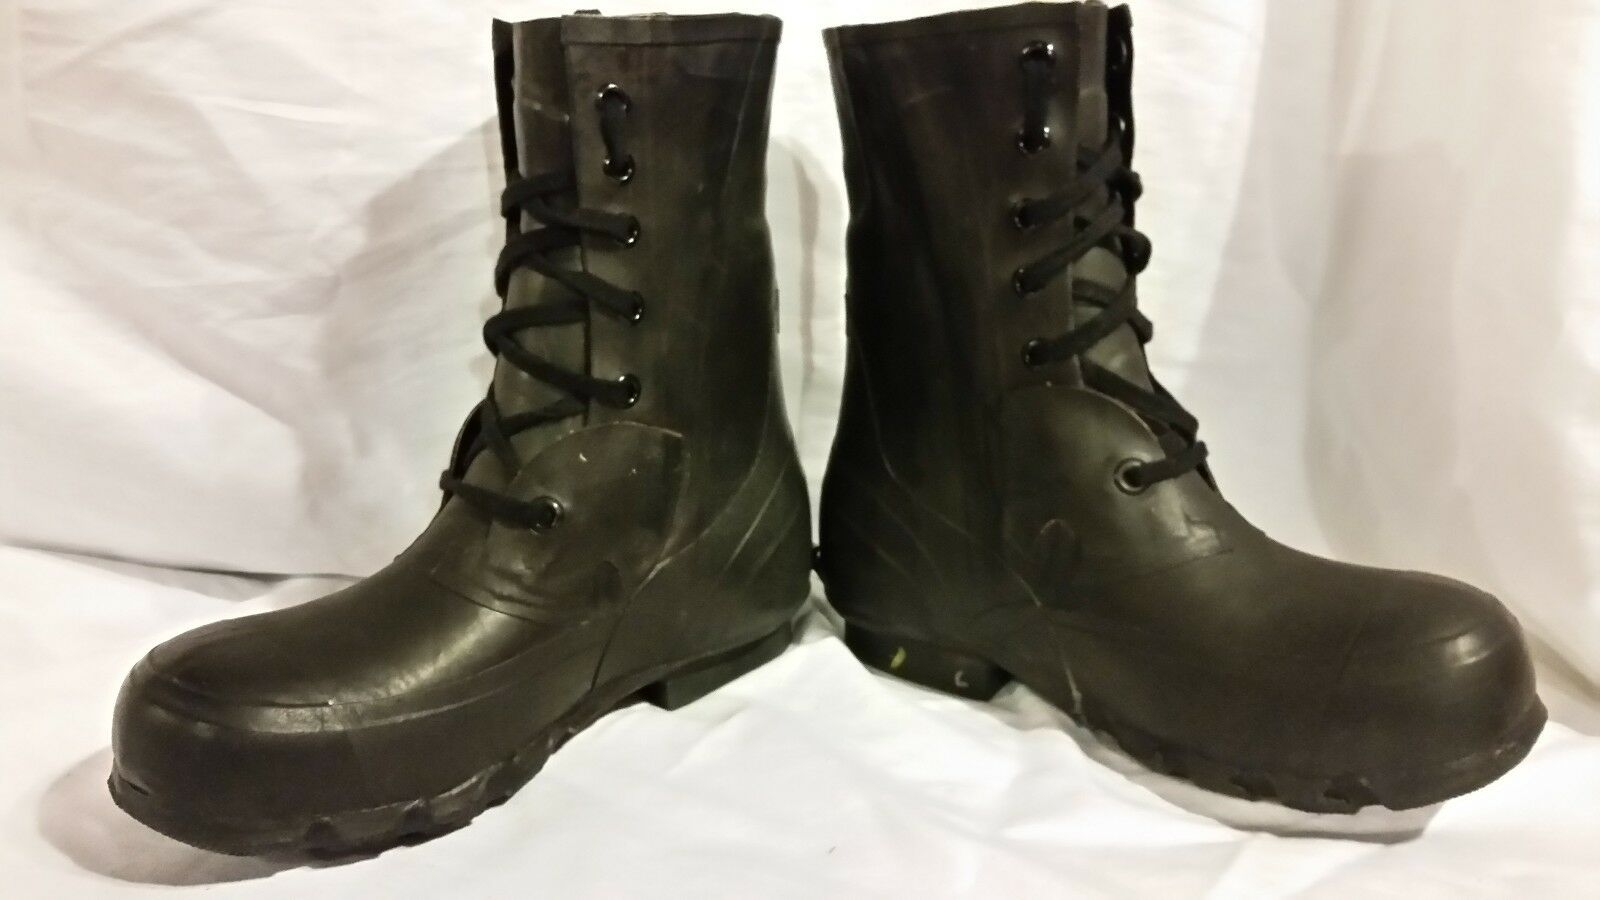 MICKEY BRISTOLITE MILITARY ARCTIC Stiefel COLD WEATHER 8 NO VALVE GROUND FORCES 8 WEATHER N 9039d6